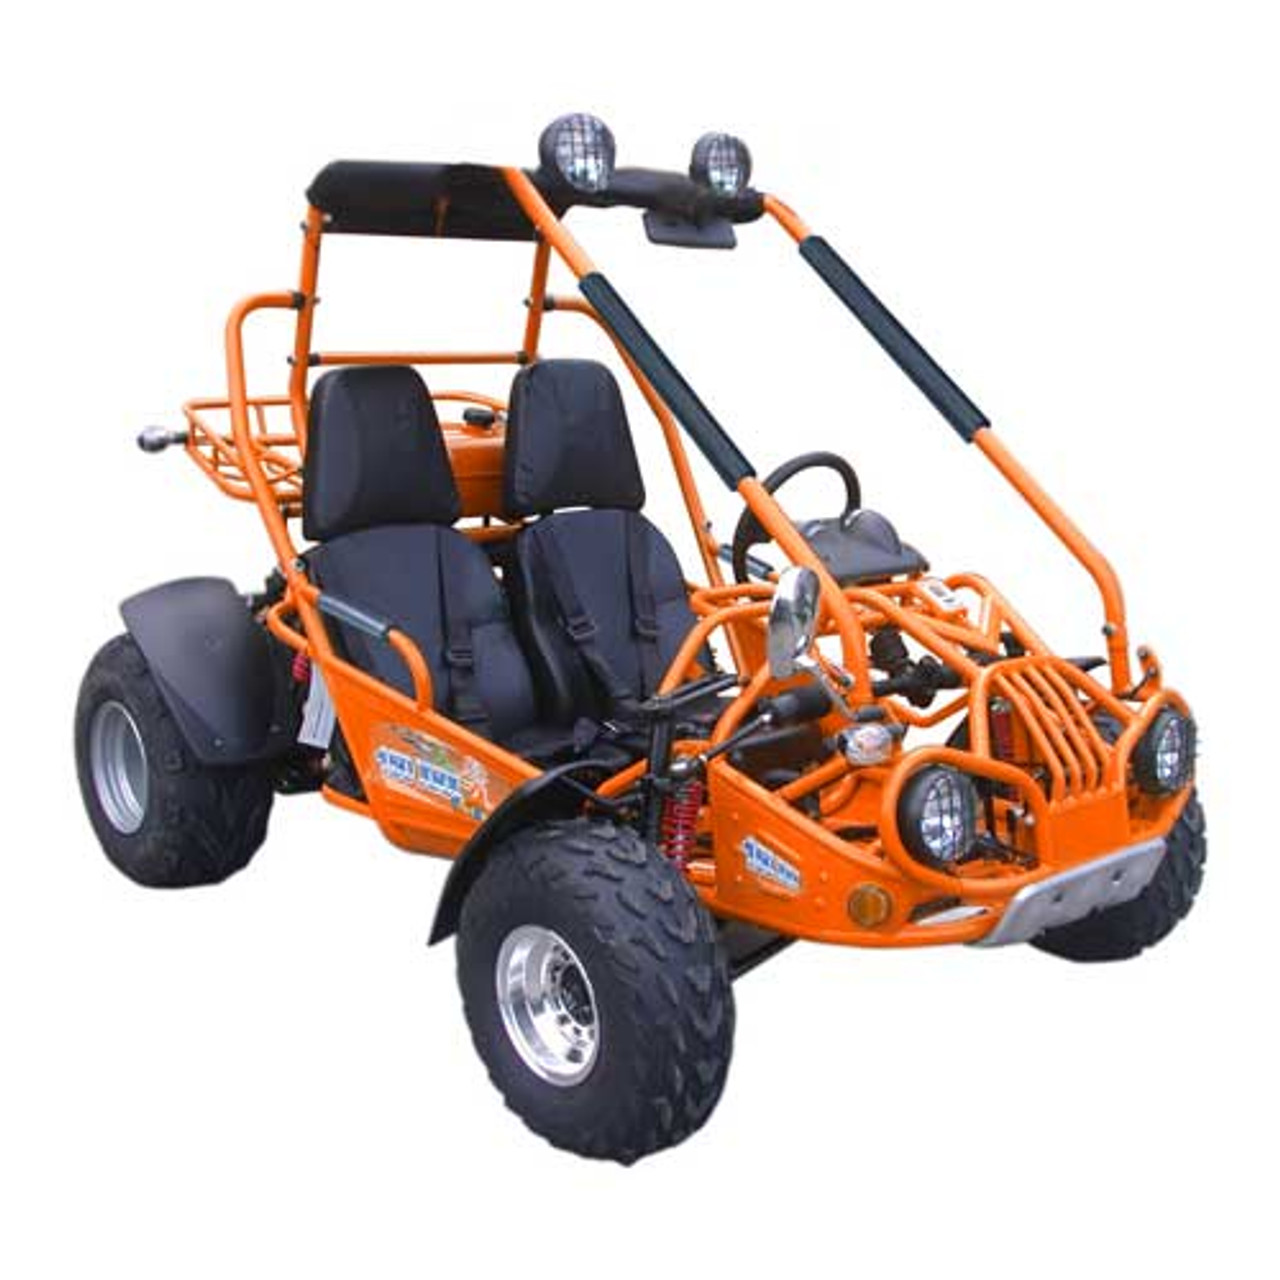 TrailMaster 150 XRX Go-Kart - Orange